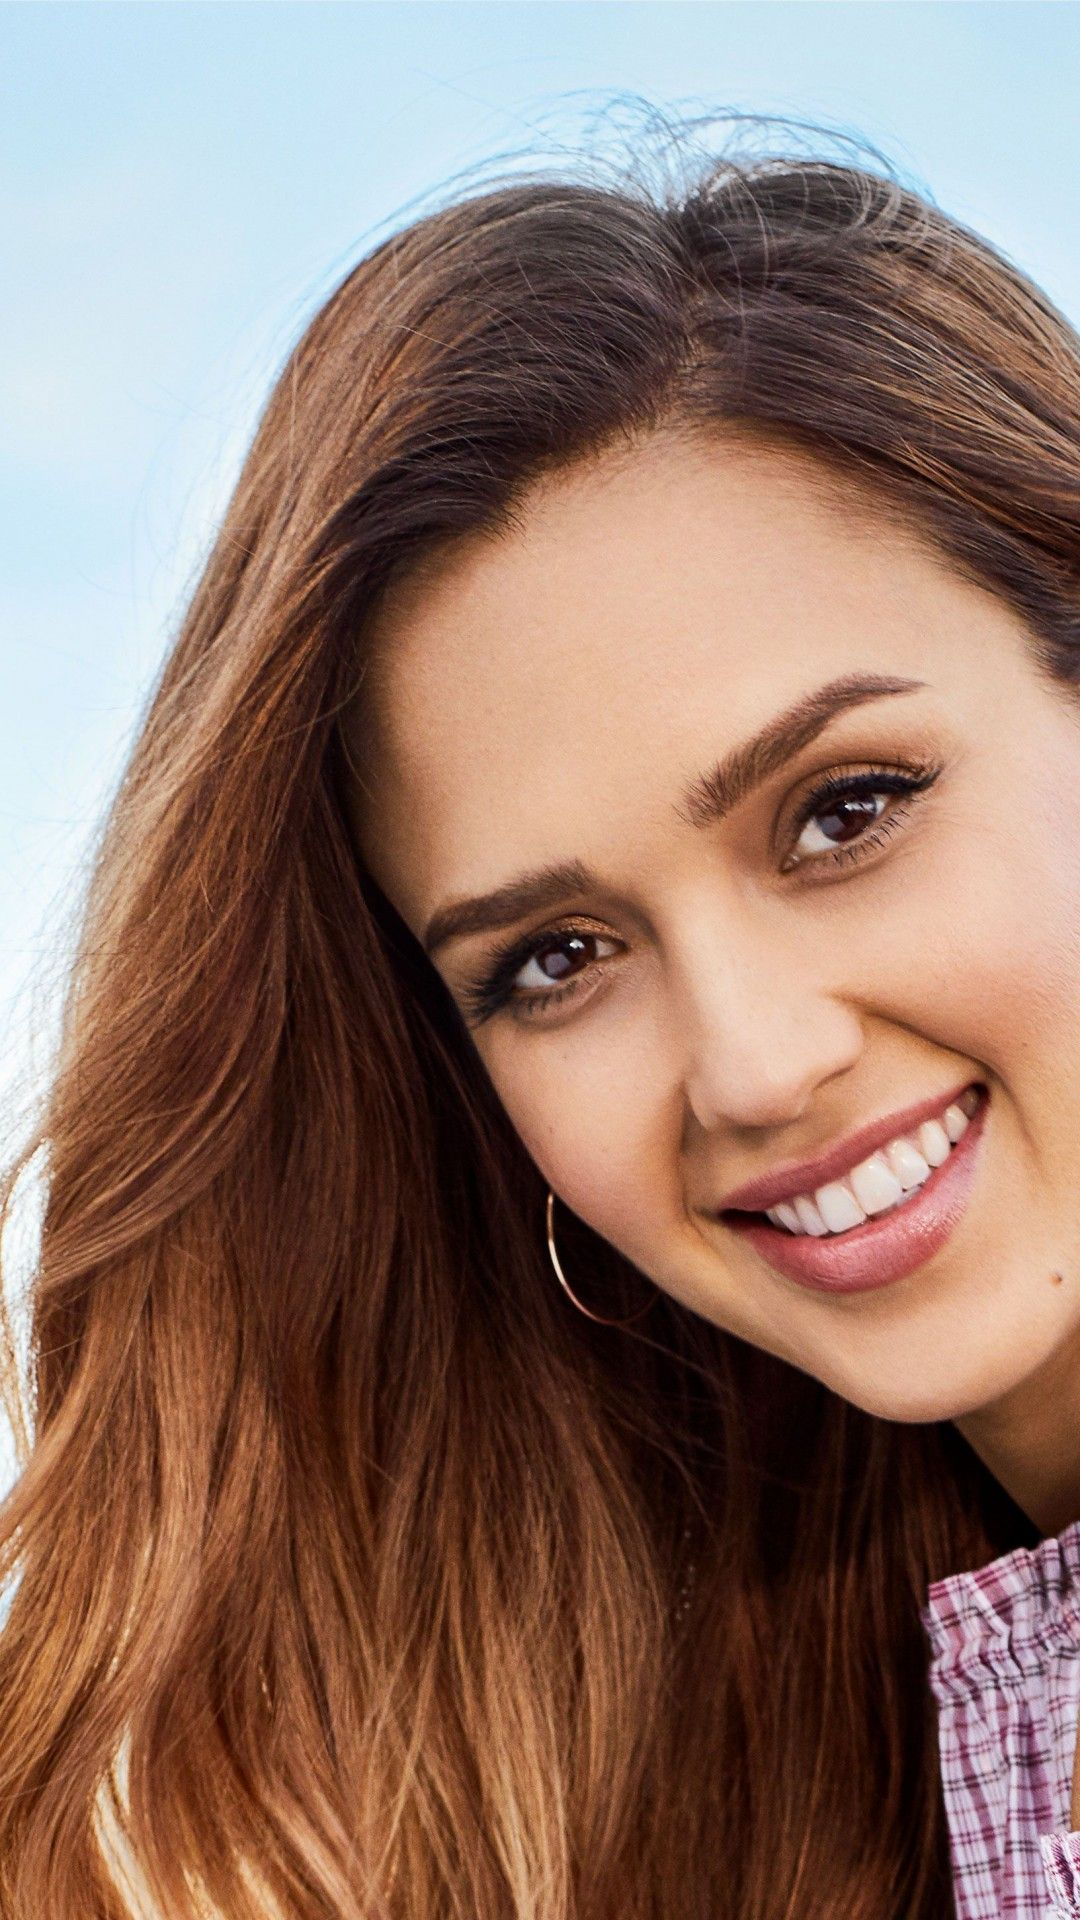 Beautiful Jessica Alba Body Background Picture Firefox Wallpaper Free Download Wallpapers Desktop In 2020 Background Pictures Beautiful Jessica Alba